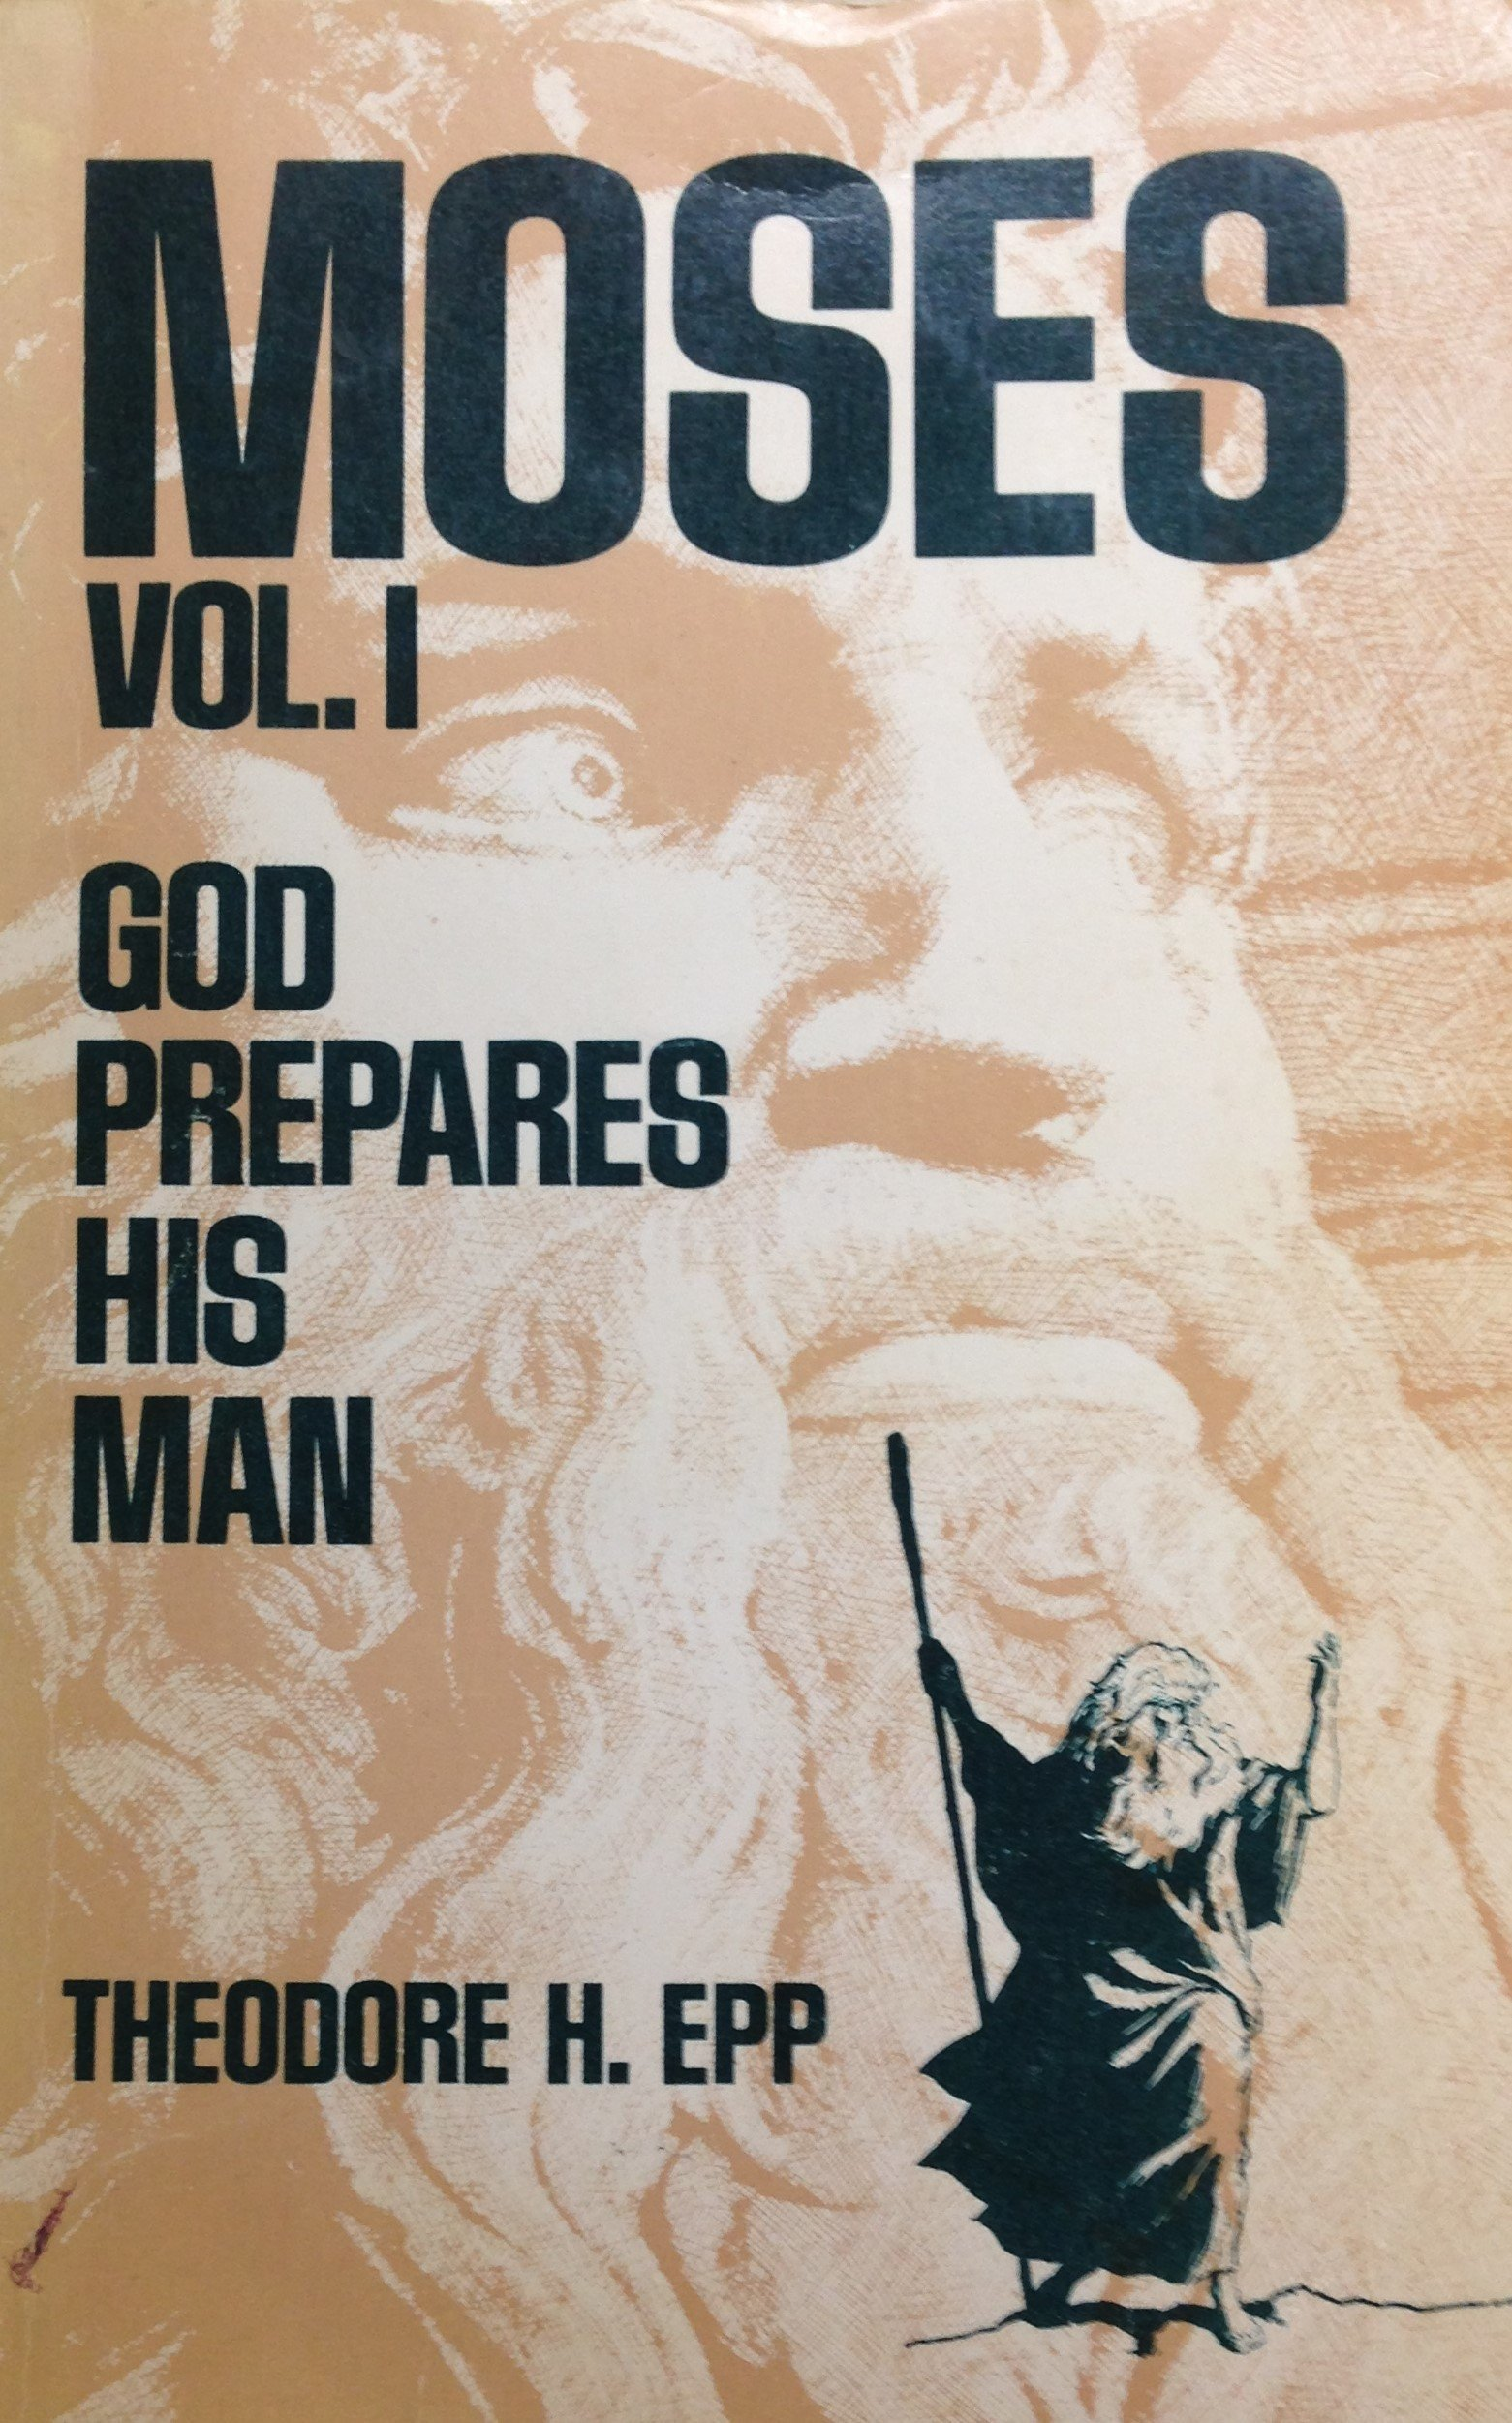 Moses Volume I:  God Prepares His Man by Theodore H. Epp (USED) 00081